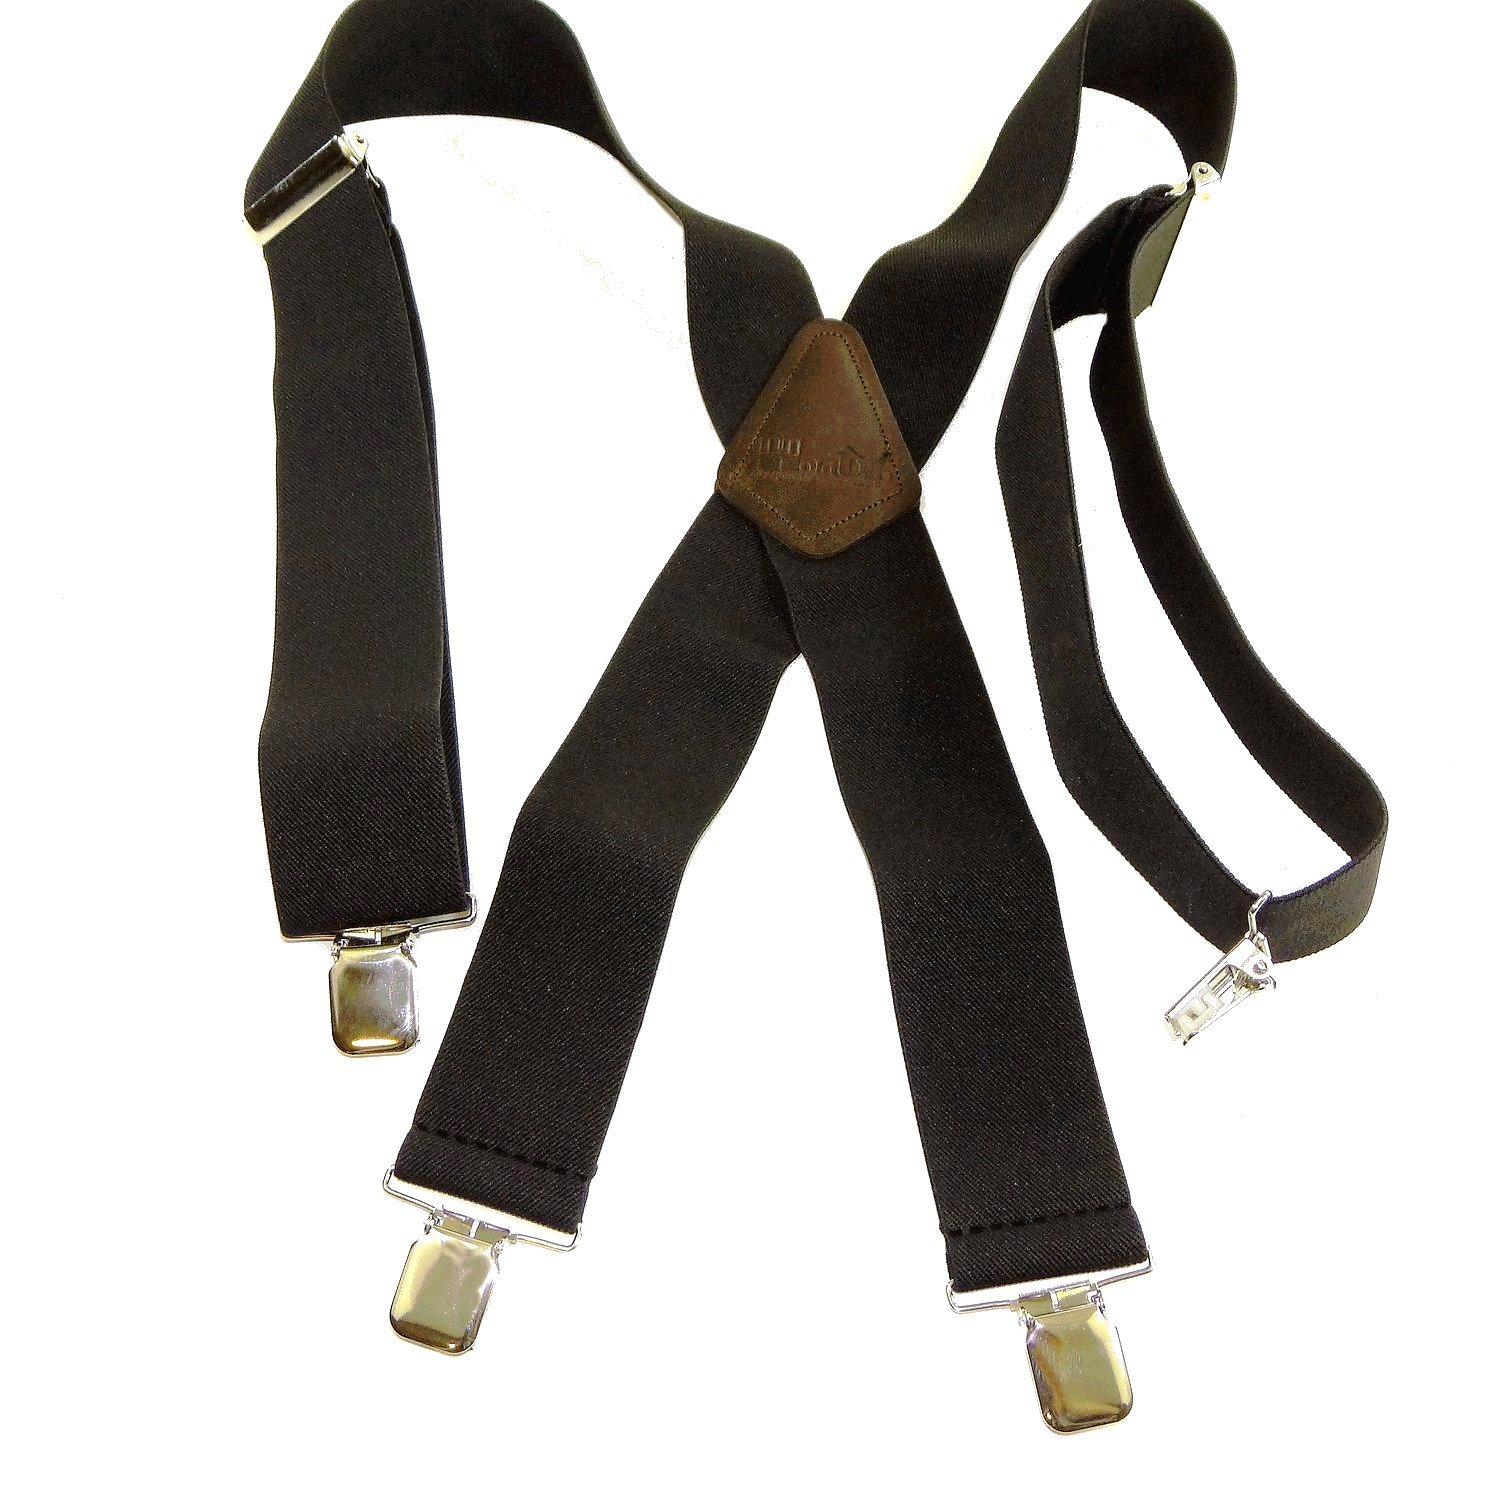 Holdup Brand 2'' Wide XL Graphite Black Work Suspenders with Patented Silver Tone Jumbo No-slip Clips